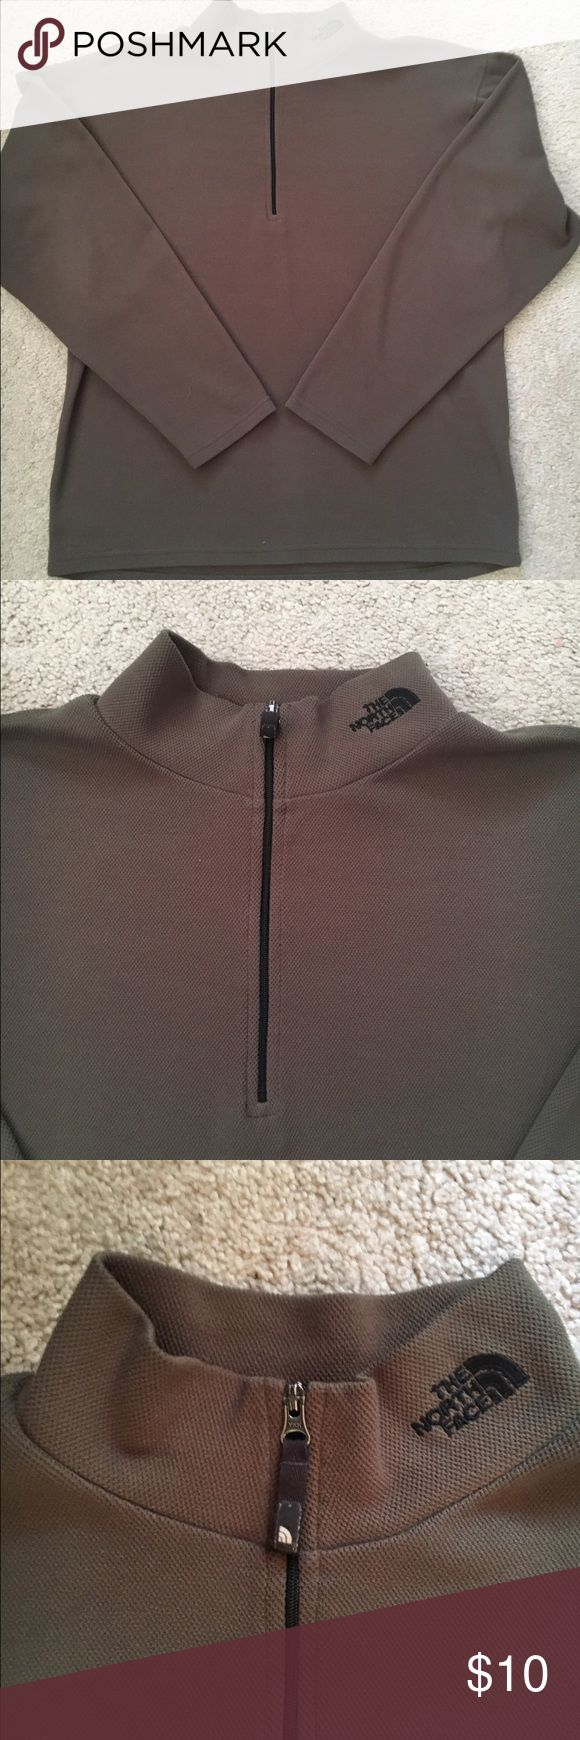 Men's North Face pullover Comfy pullover in olive green The North Face Shirts Sweatshirts & Hoodies